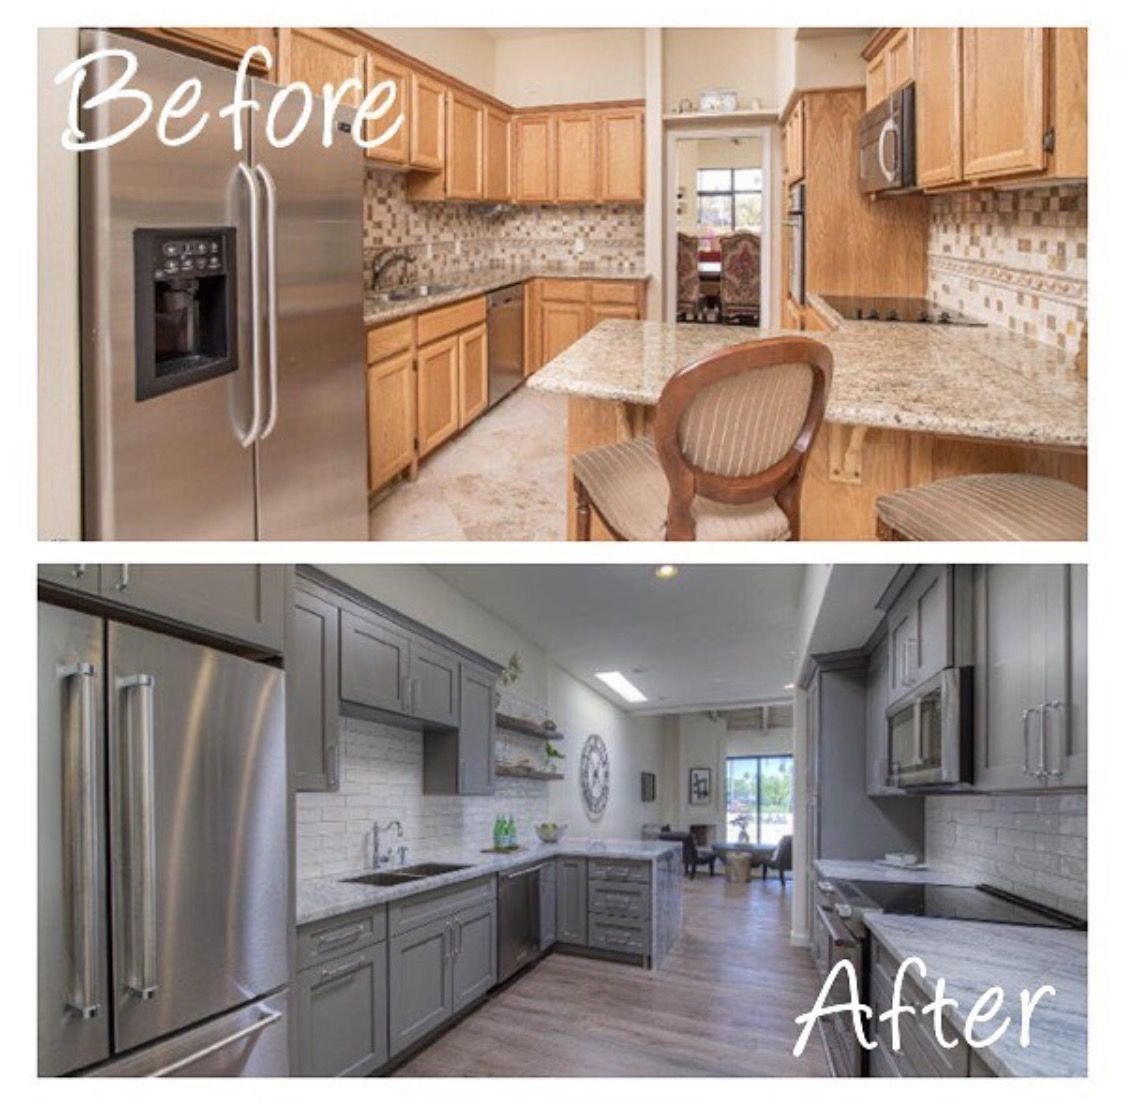 Removing Partial Wall In A Galley Kitchen Makes All The Difference Opens It Up Makes It Look Bi Galley Kitchen Remodel Home Kitchens Kitchen Counter Cabinet